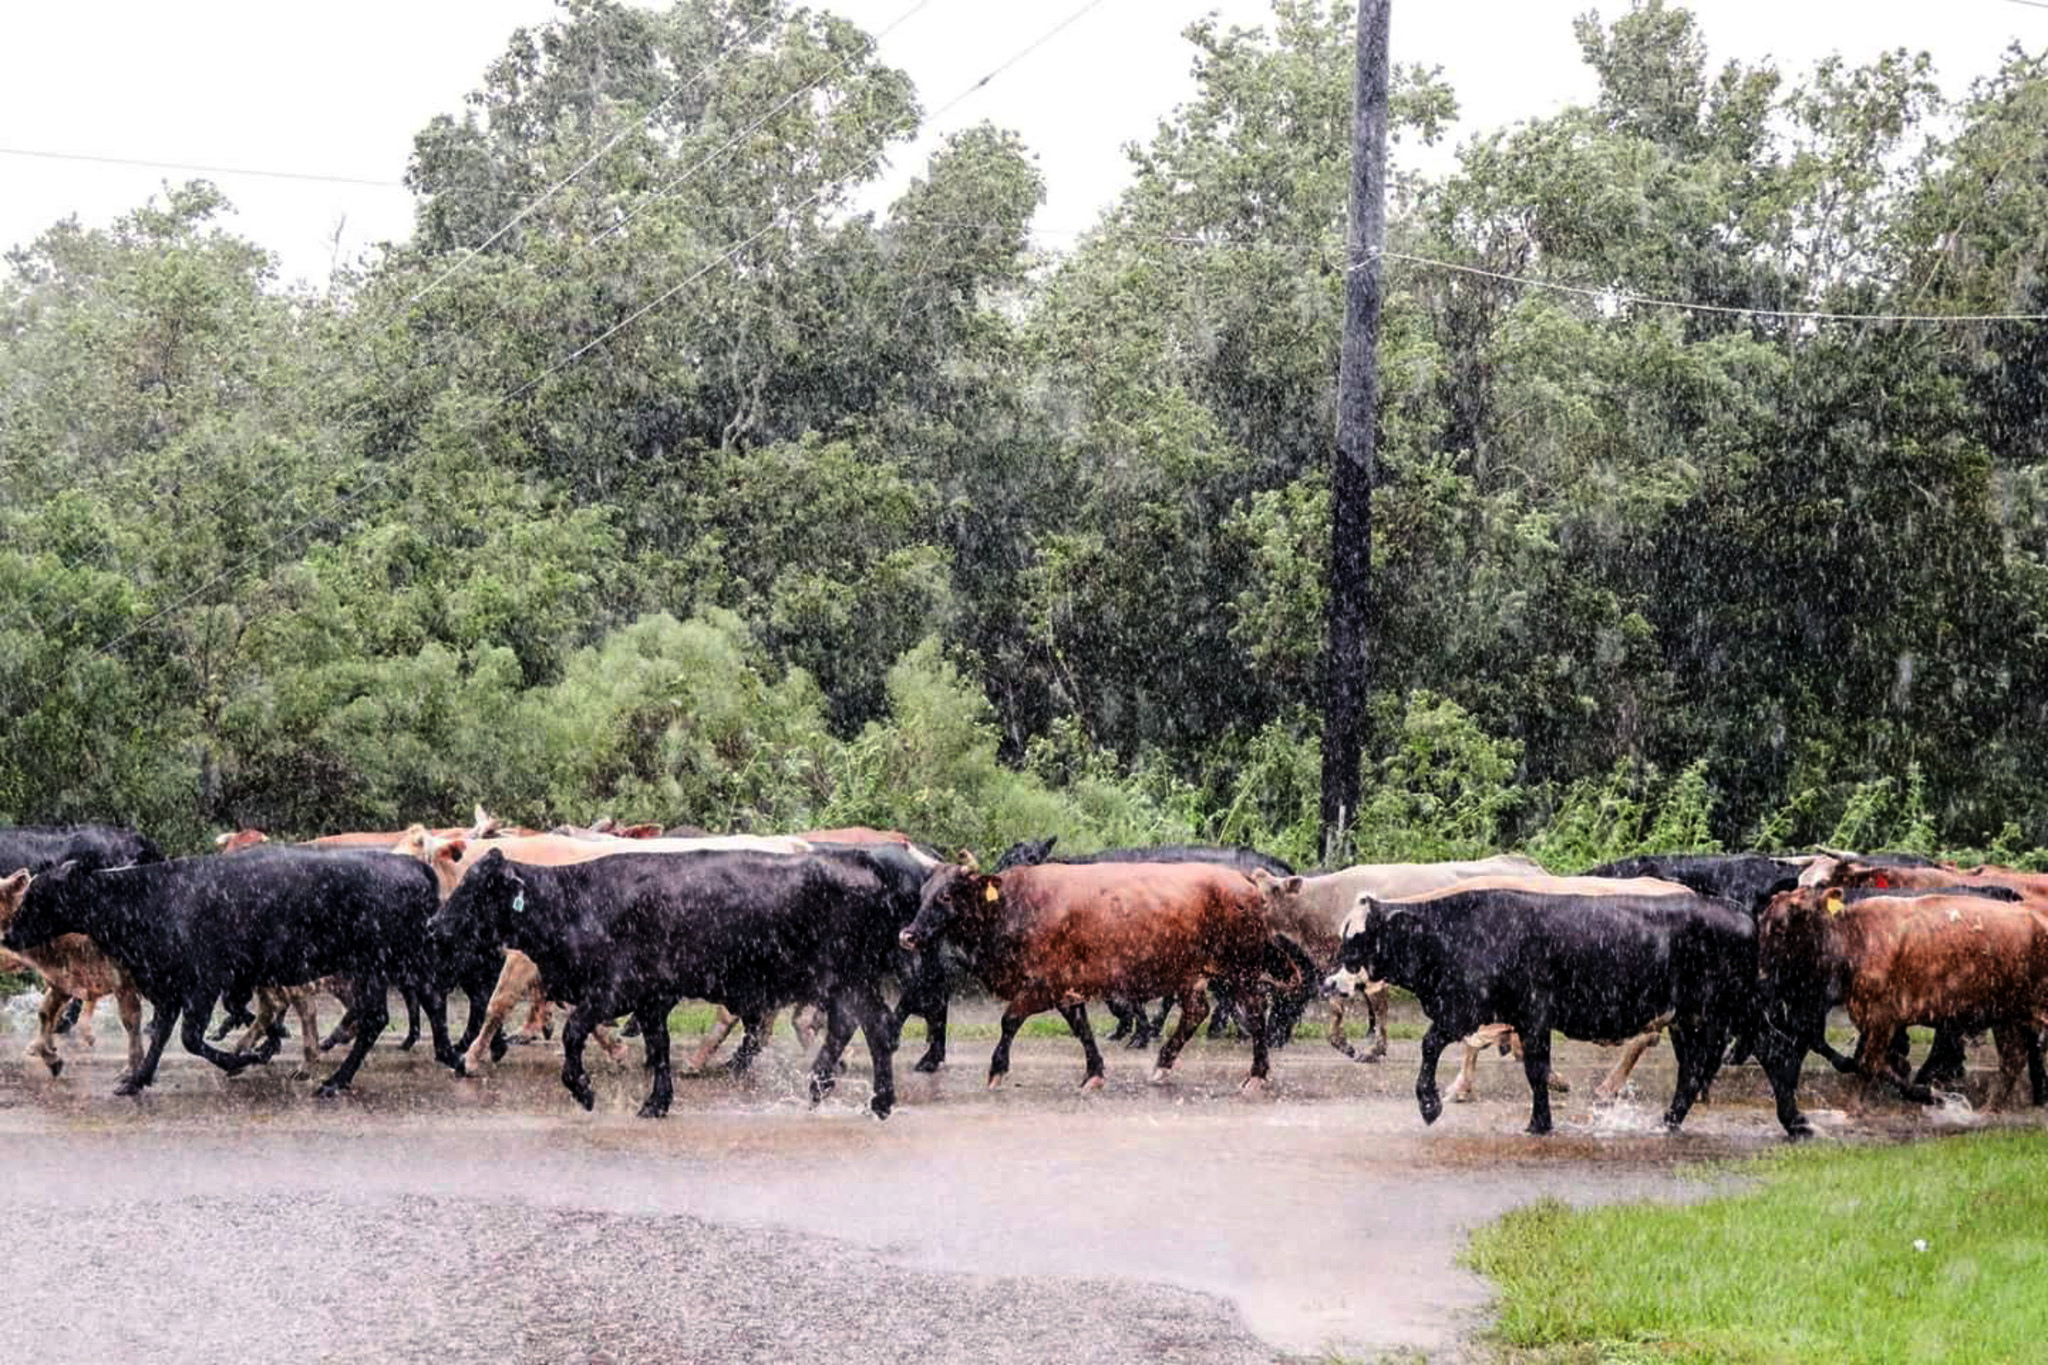 Displaced cattle seek higher ground during Hurricane Harvey in Brazoria County, Texas. Livestock will seek higher ground during flooding, but unfortunately, farmers can't relocate their crops.